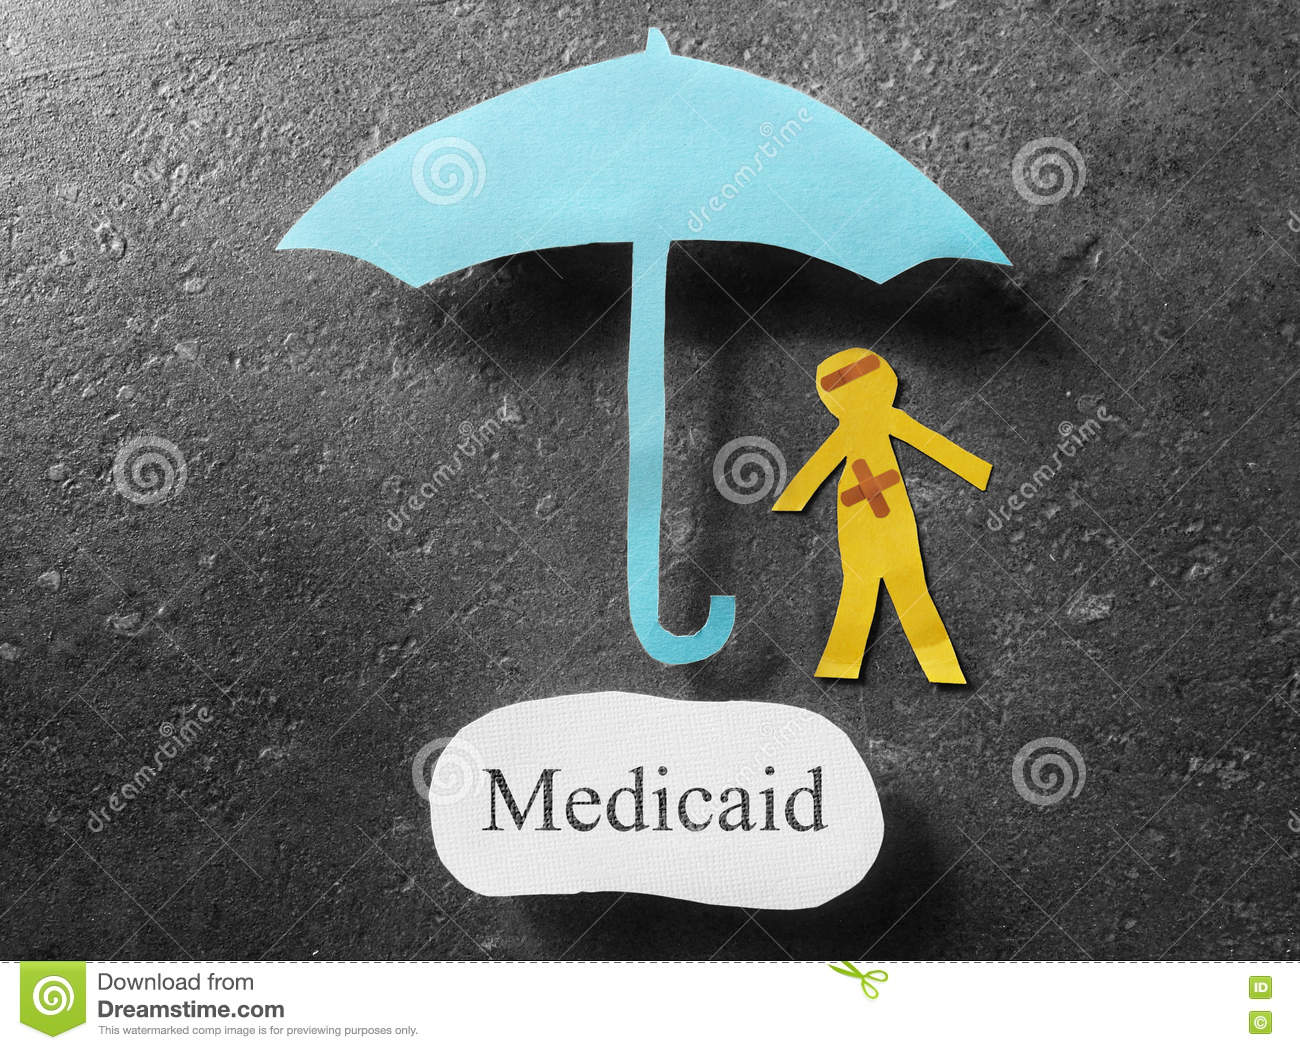 Medicaid healthcare concept